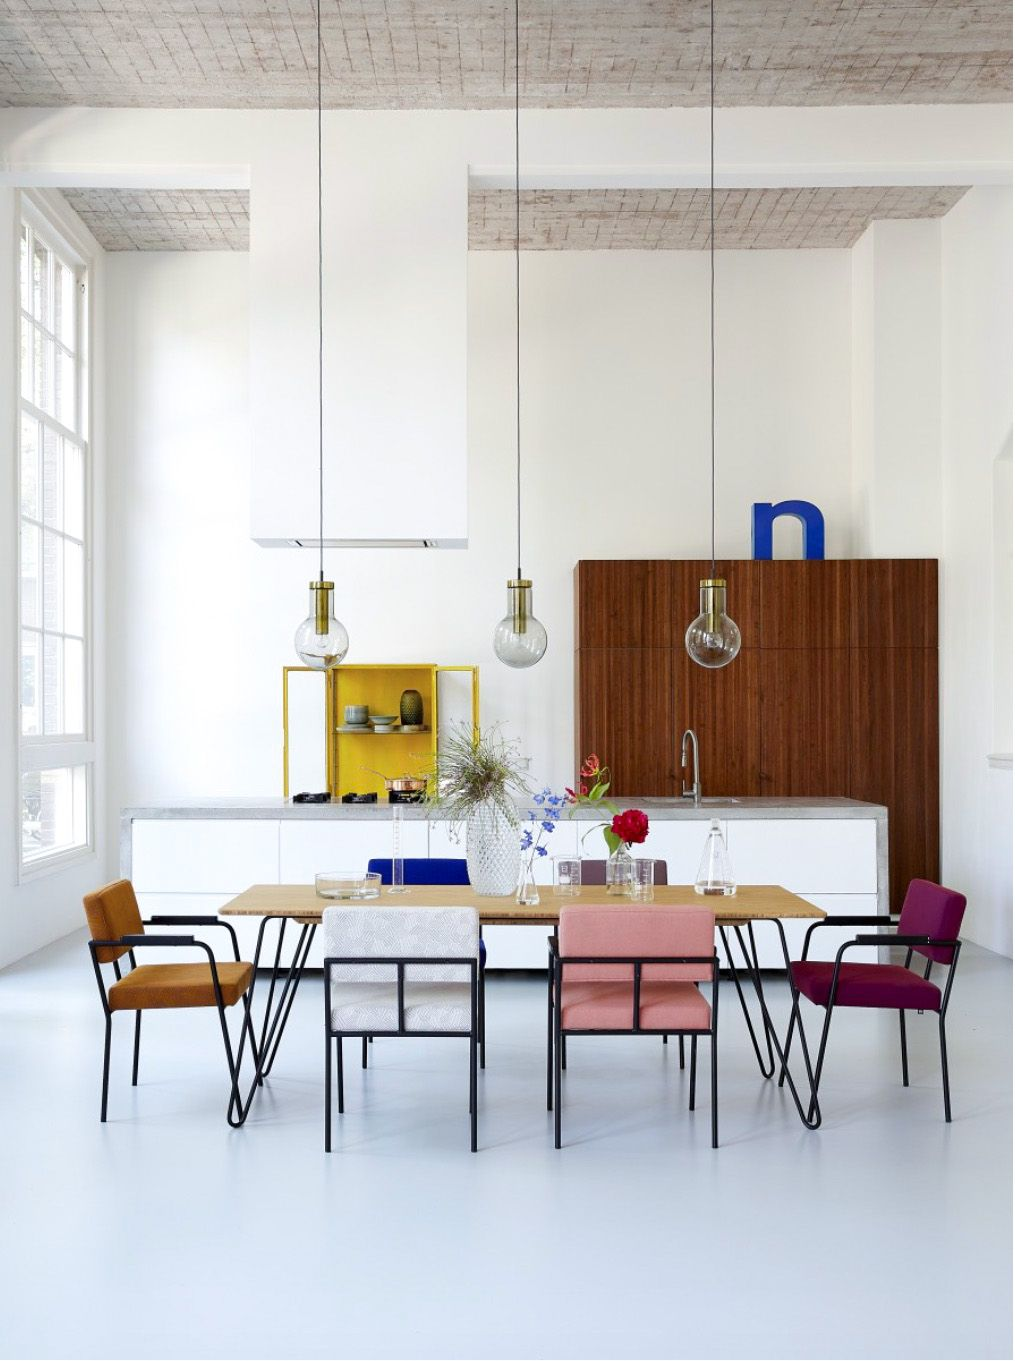 50s inspired dining space | dining rooms | Pinterest | Kücheninsel ...